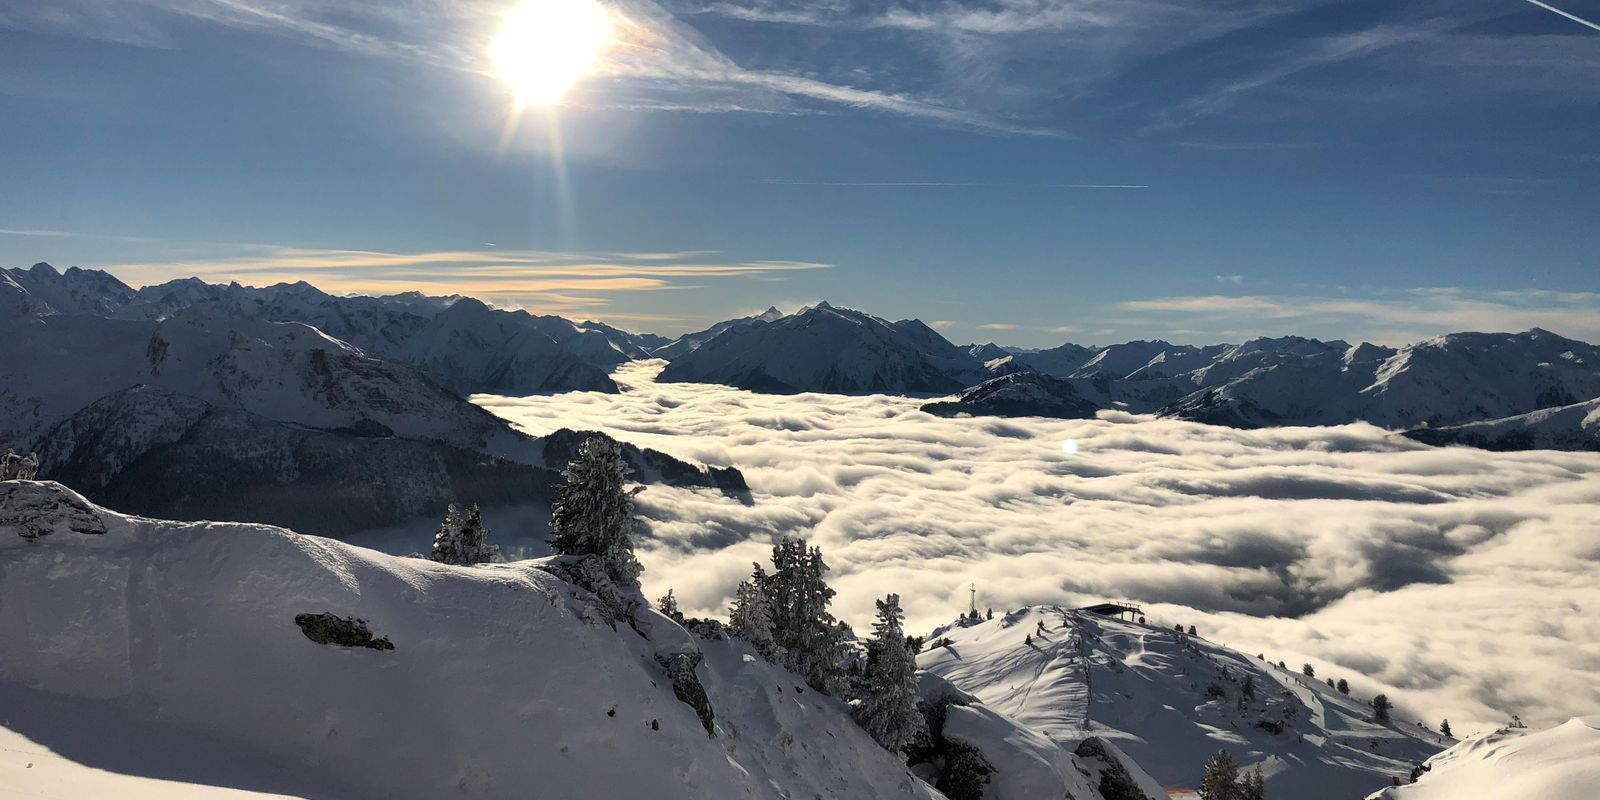 The Zillertal in a sea of clouds